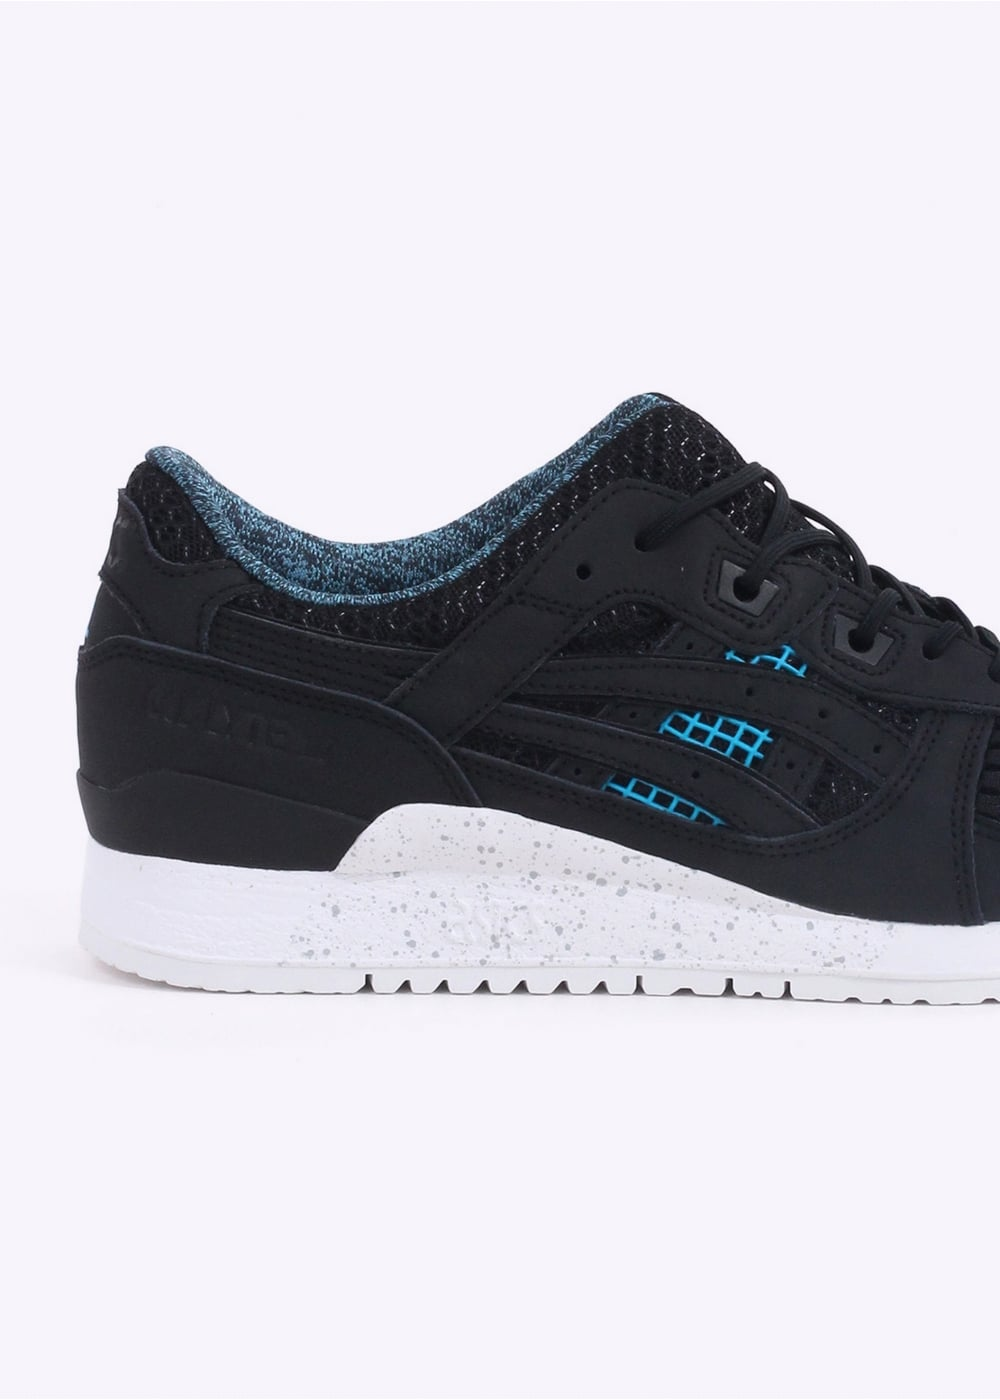 Asics From Triads UK